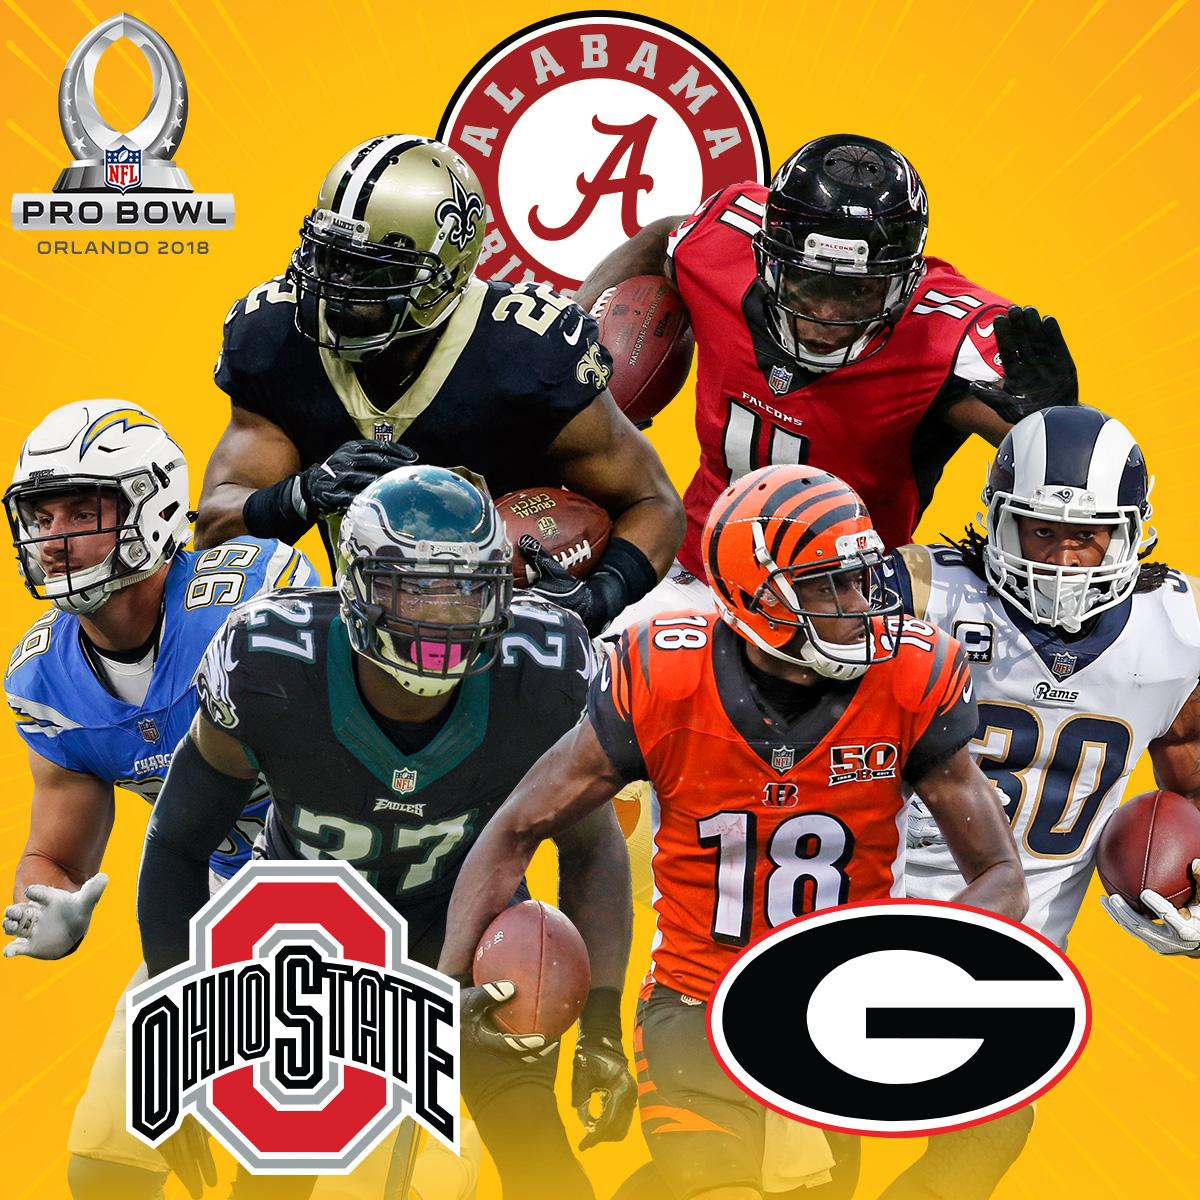 Breaking down 2018 #ProBowl players by college  1. @OhioStateFB (5) 2t. @AlabamaFTBL (4) 2t. @FootballUGA (4) FULL: https://t.co/rYM04hAP1P